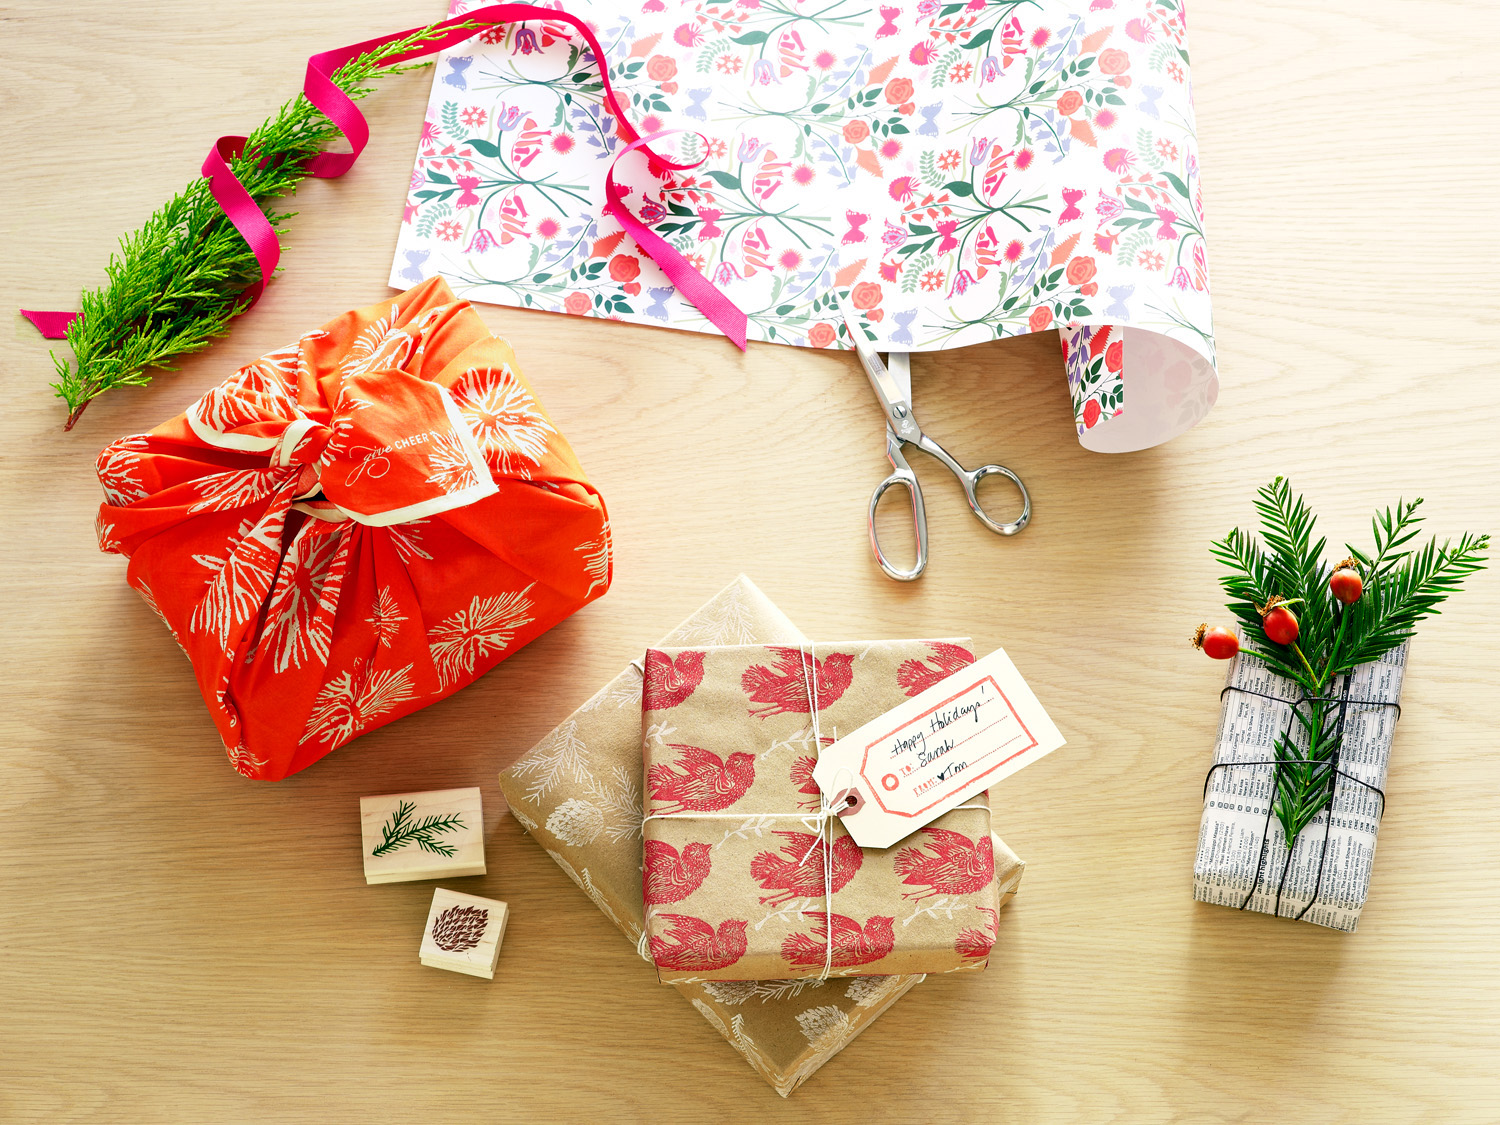 8 Unique Gift Wrap Ideas